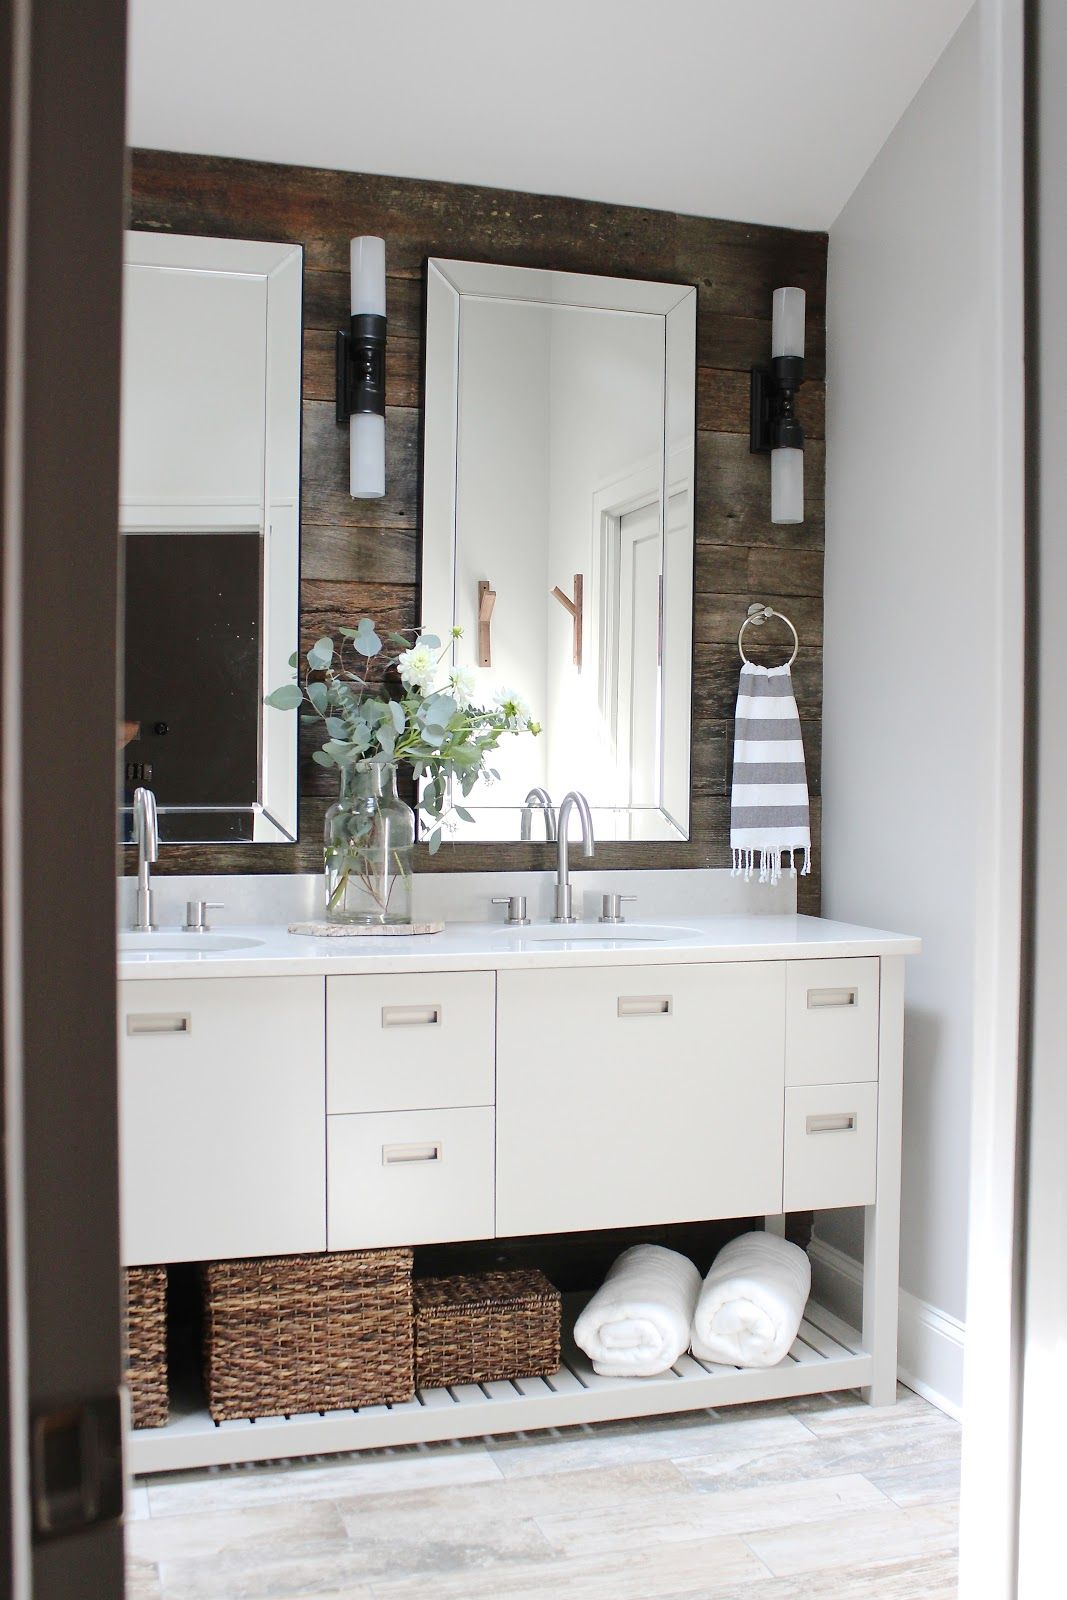 Before And After Small Bathroom Makeover Rustic Bathrooms Rustic Modern Bathroom